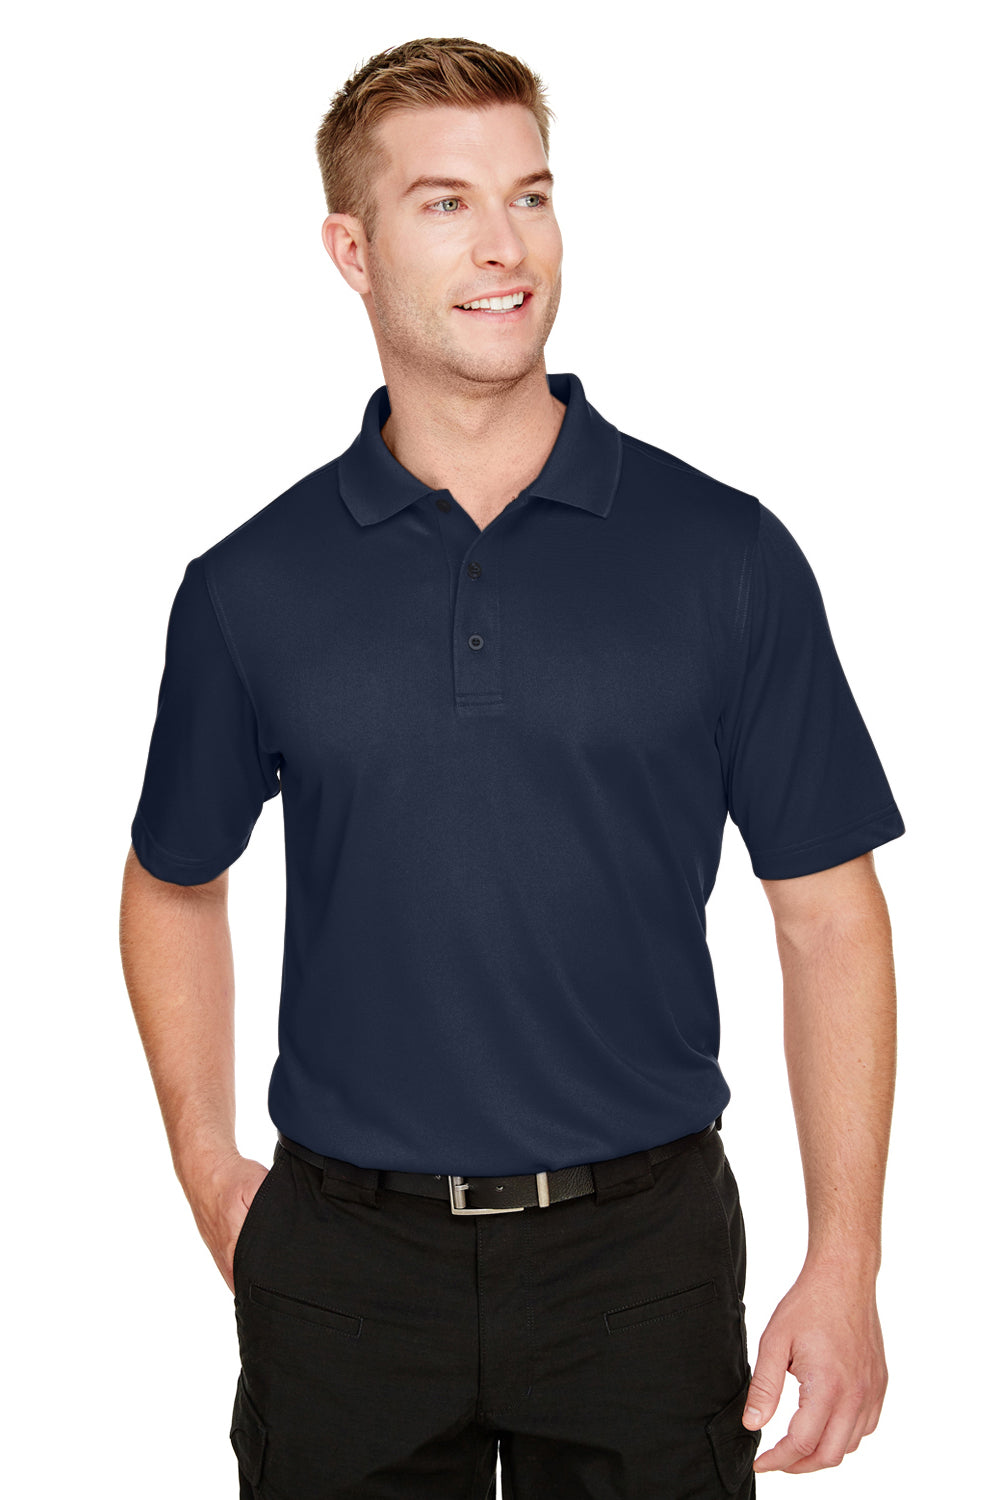 Harriton M348 Mens Advantage Performance Moisture Wicking Short Sleeve Polo Shirt Navy Blue Front